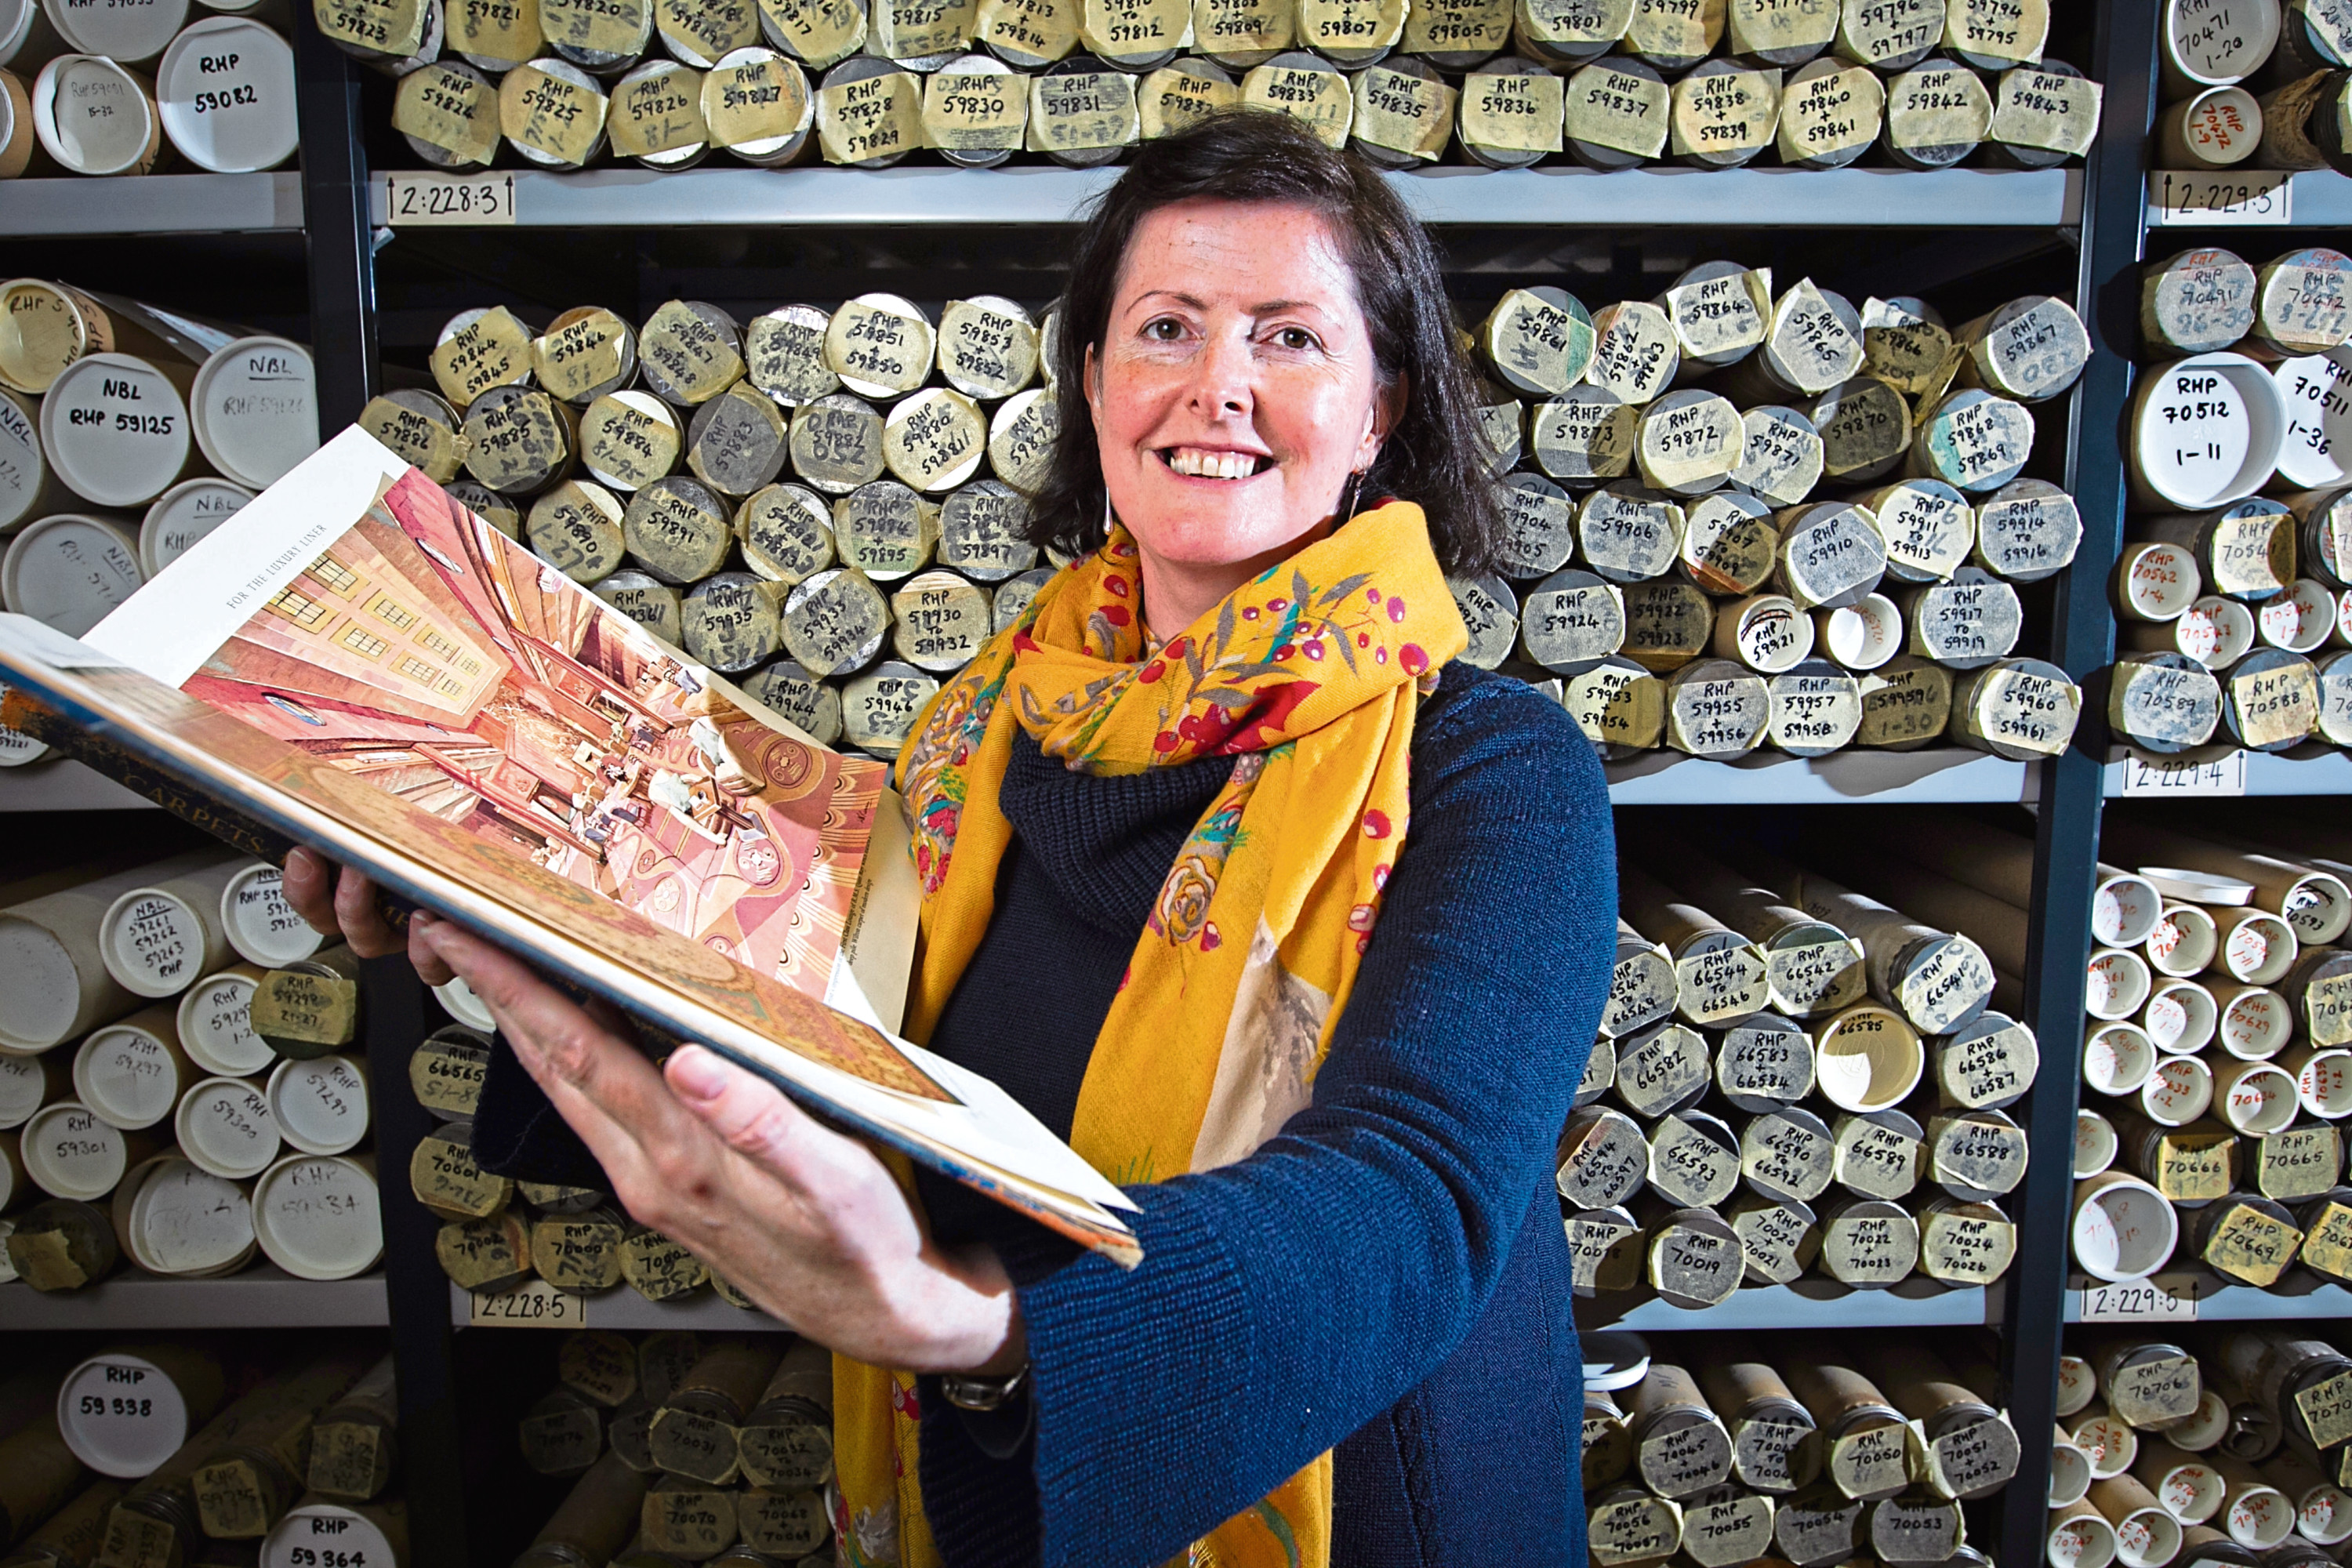 Glasgow University archivist, Claire McDade, with some of the carpet and textile designs in the university's archives, as they are due to launch a new exhibition, showing how Glasgow's carpet factories made carpets for all over the world.